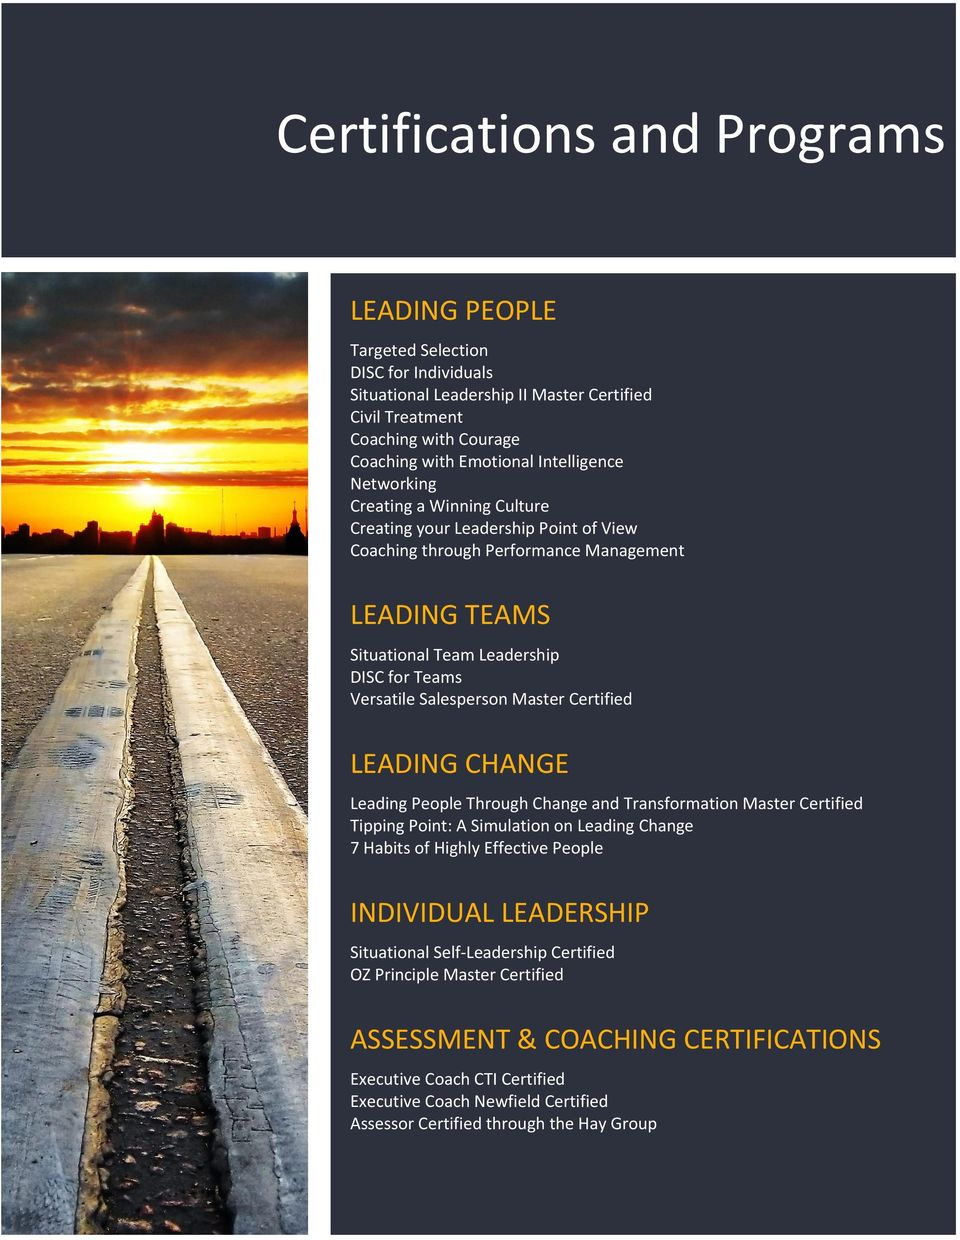 Salesperson Master Certified LEADING CHANGE Leading People Through Change and Transformation Master Certified Tipping Point: A Simulation on Leading Change 7 Habits of Highly Effective People